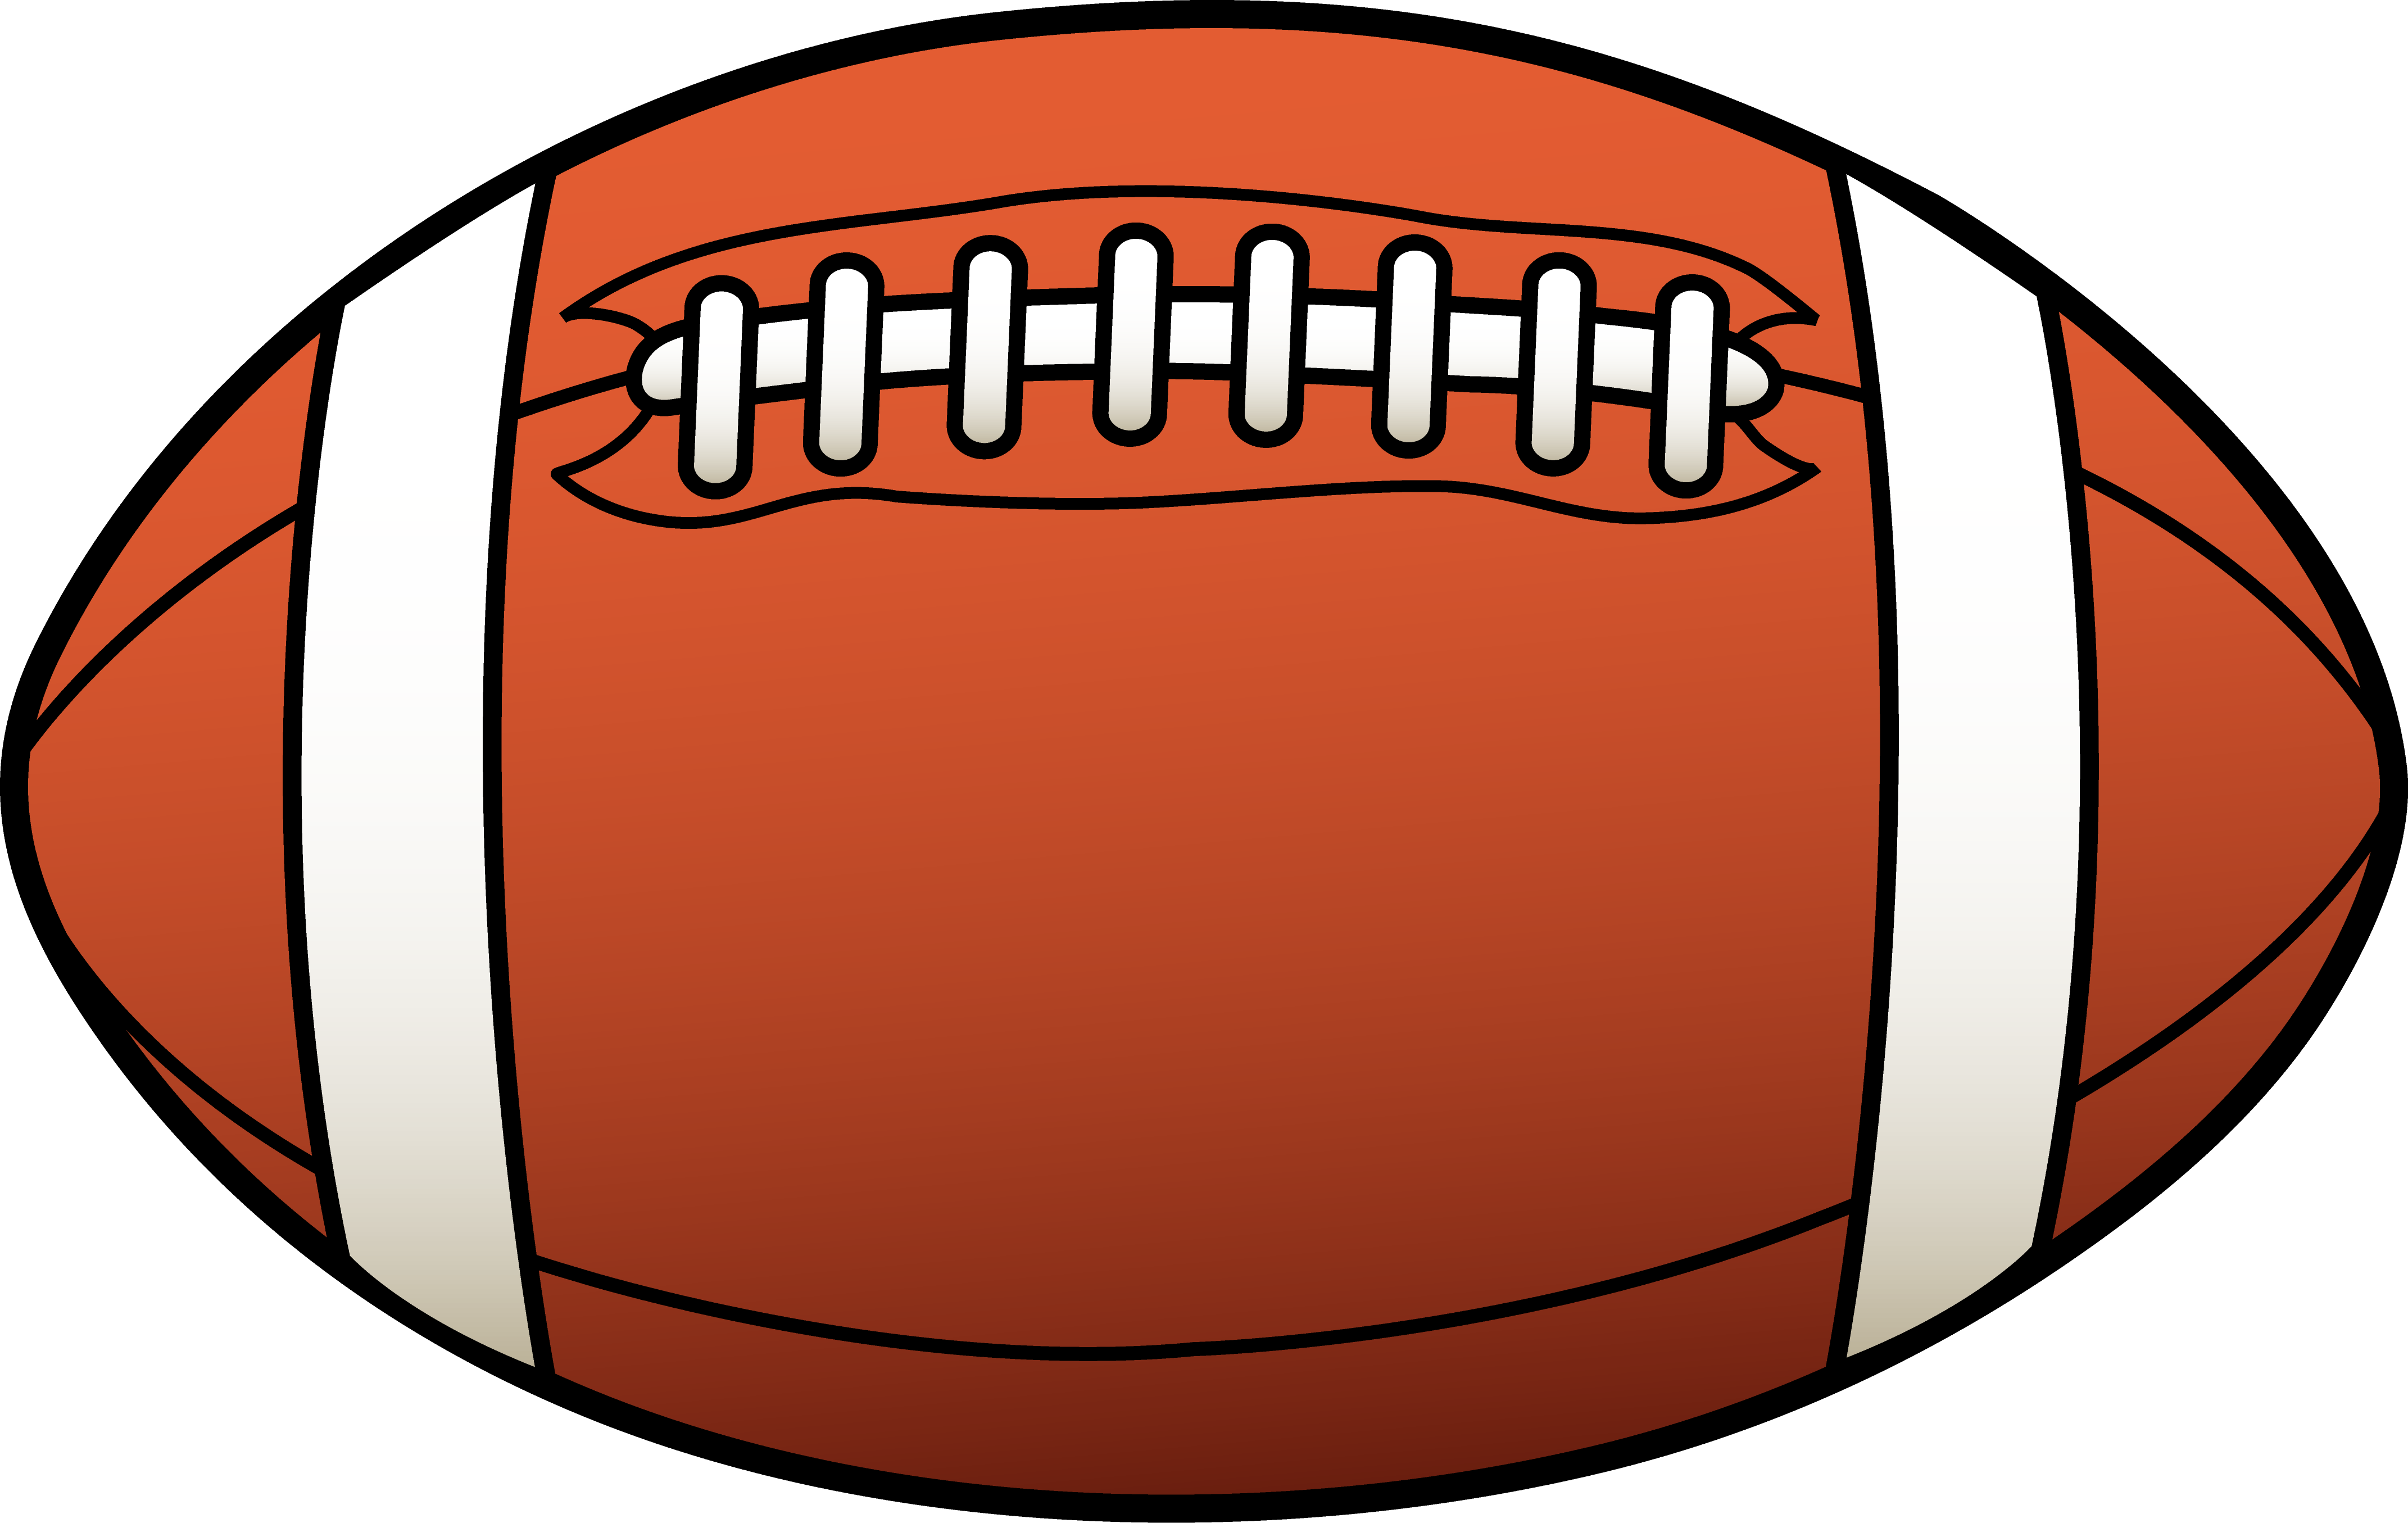 Free Pro Football Cliparts, Download Free Clip Art, Free.